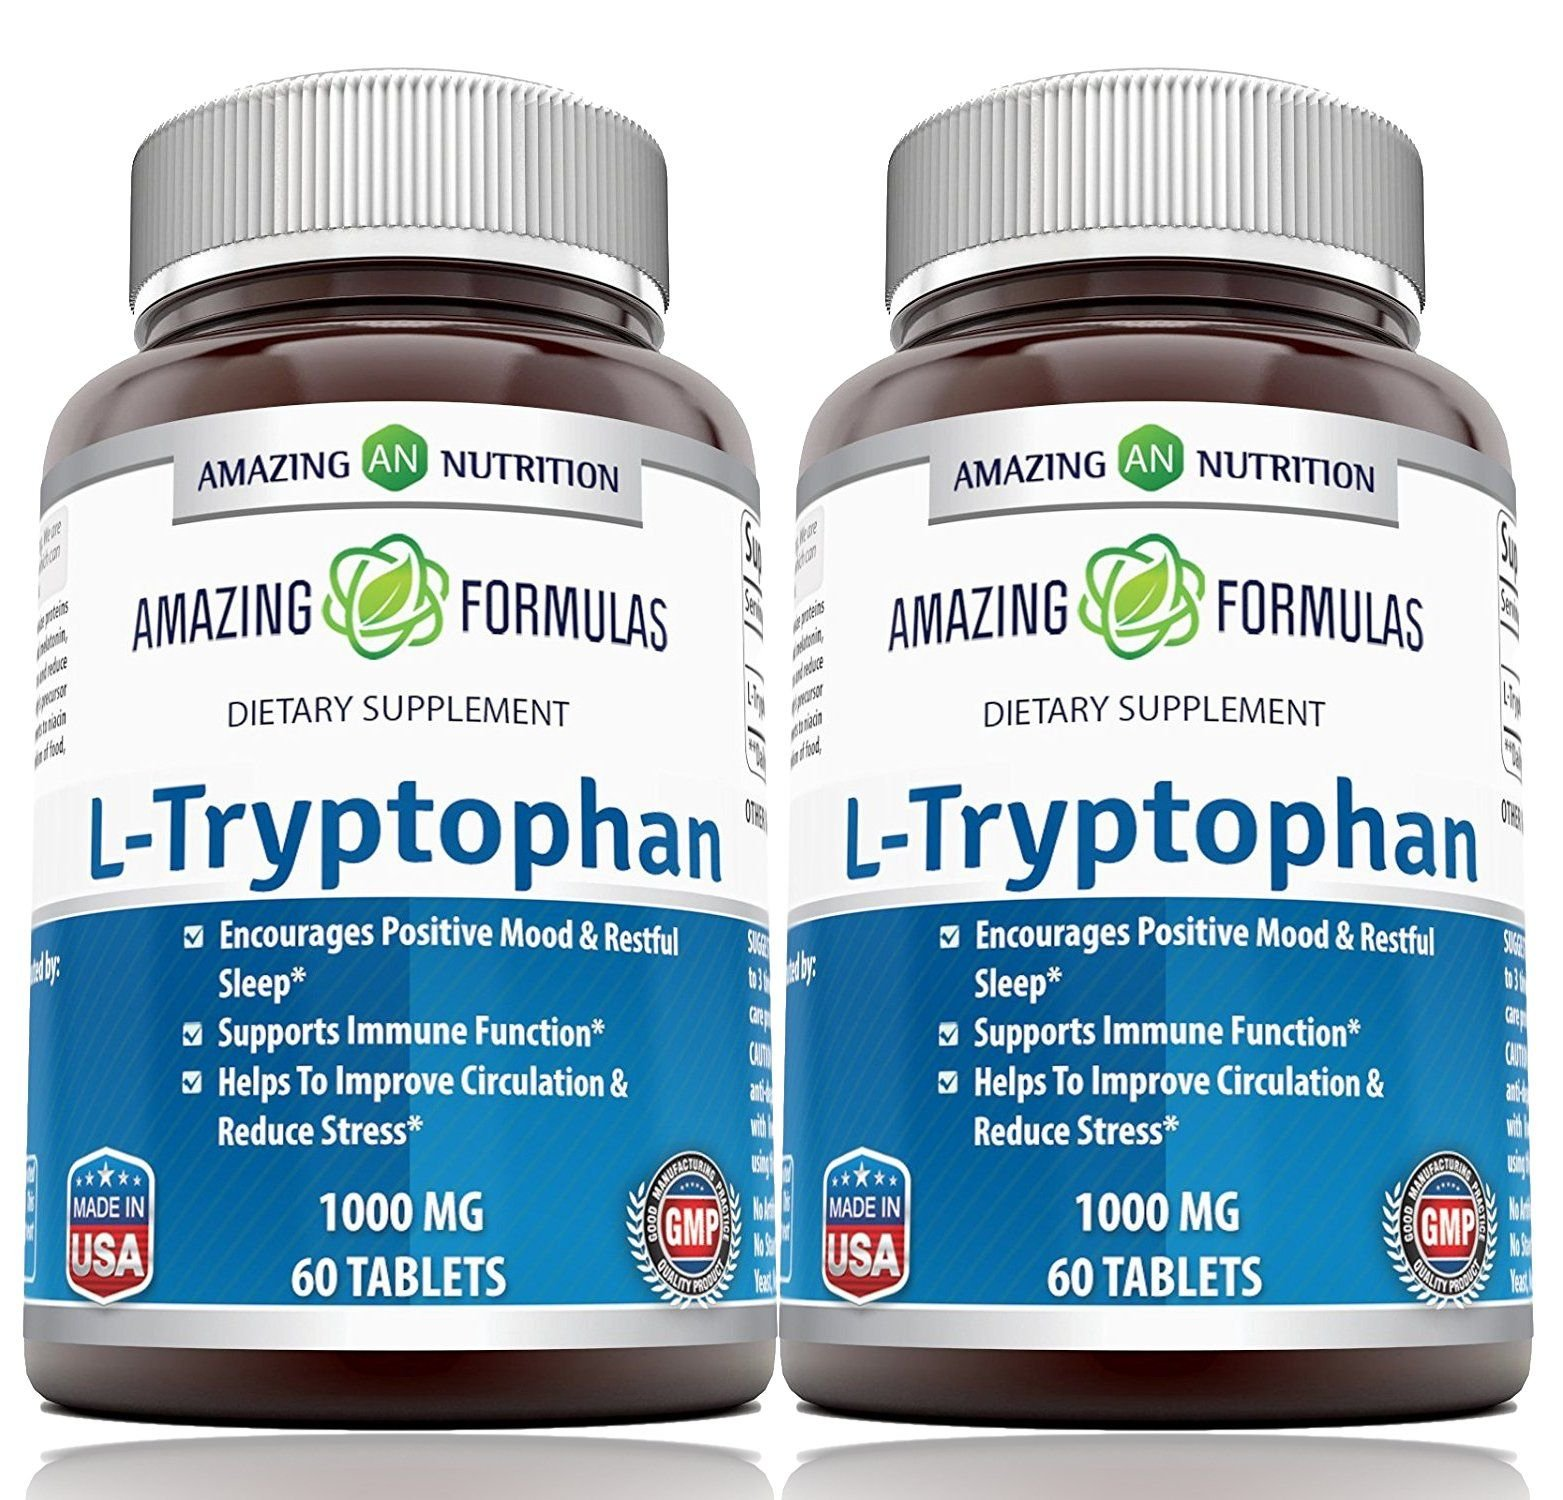 Amazing Formulas L-Tryptophan Dietary Supplement - Natural Sleep Aid Supplements with 1000 mg of Free Form L Tryptophan - For Stress Relief, Circulation & Immune Support - (2 Pack)